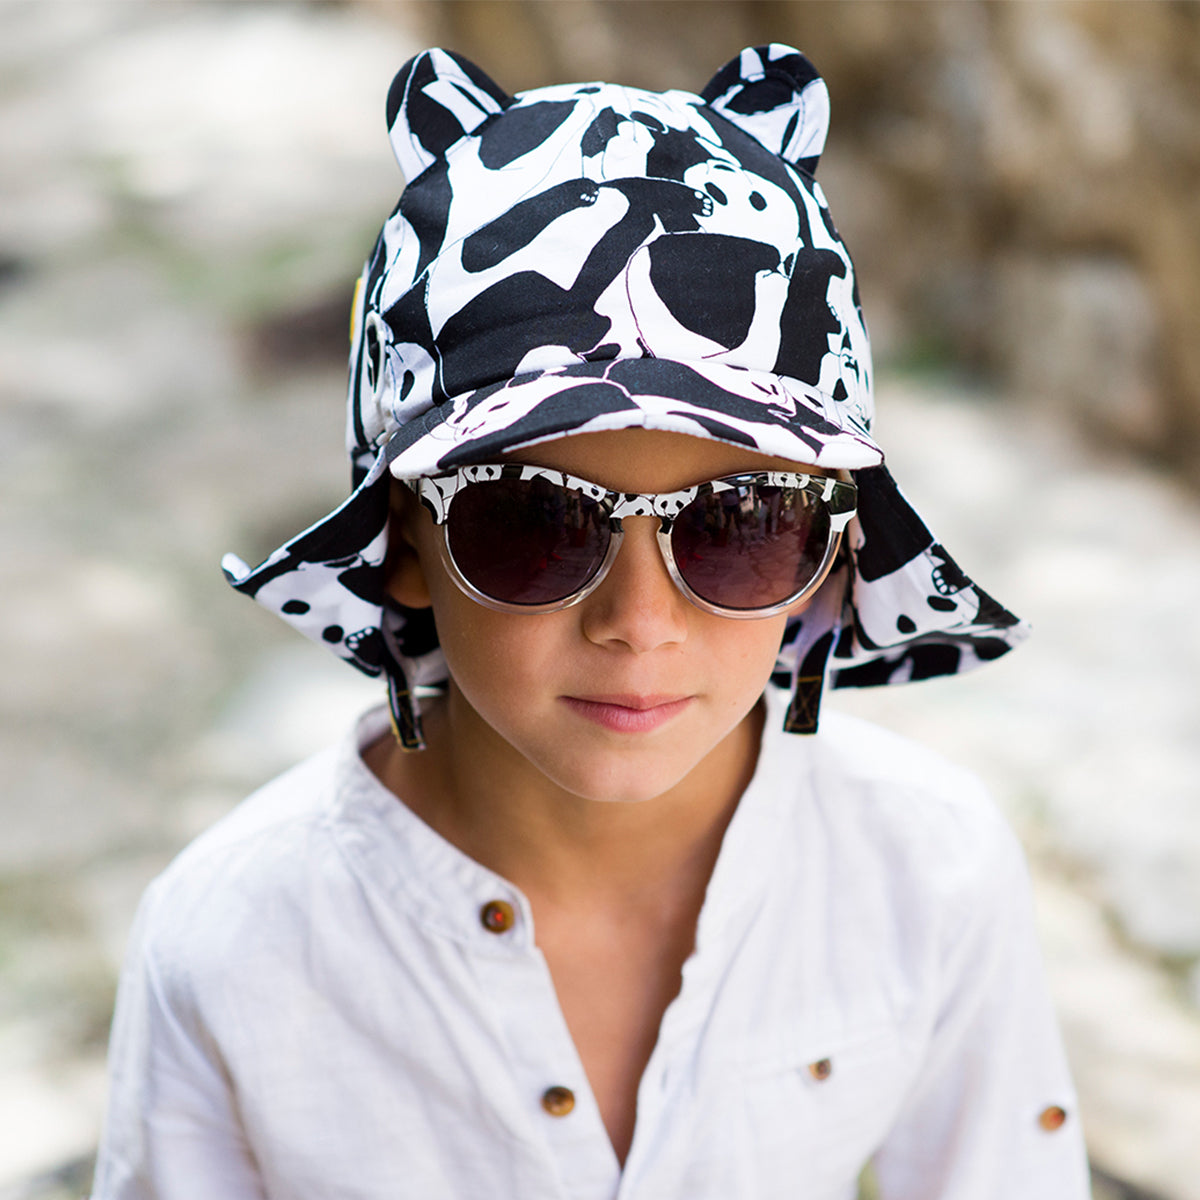 Panda Pop Sun Hat - Moo Like a Monkey